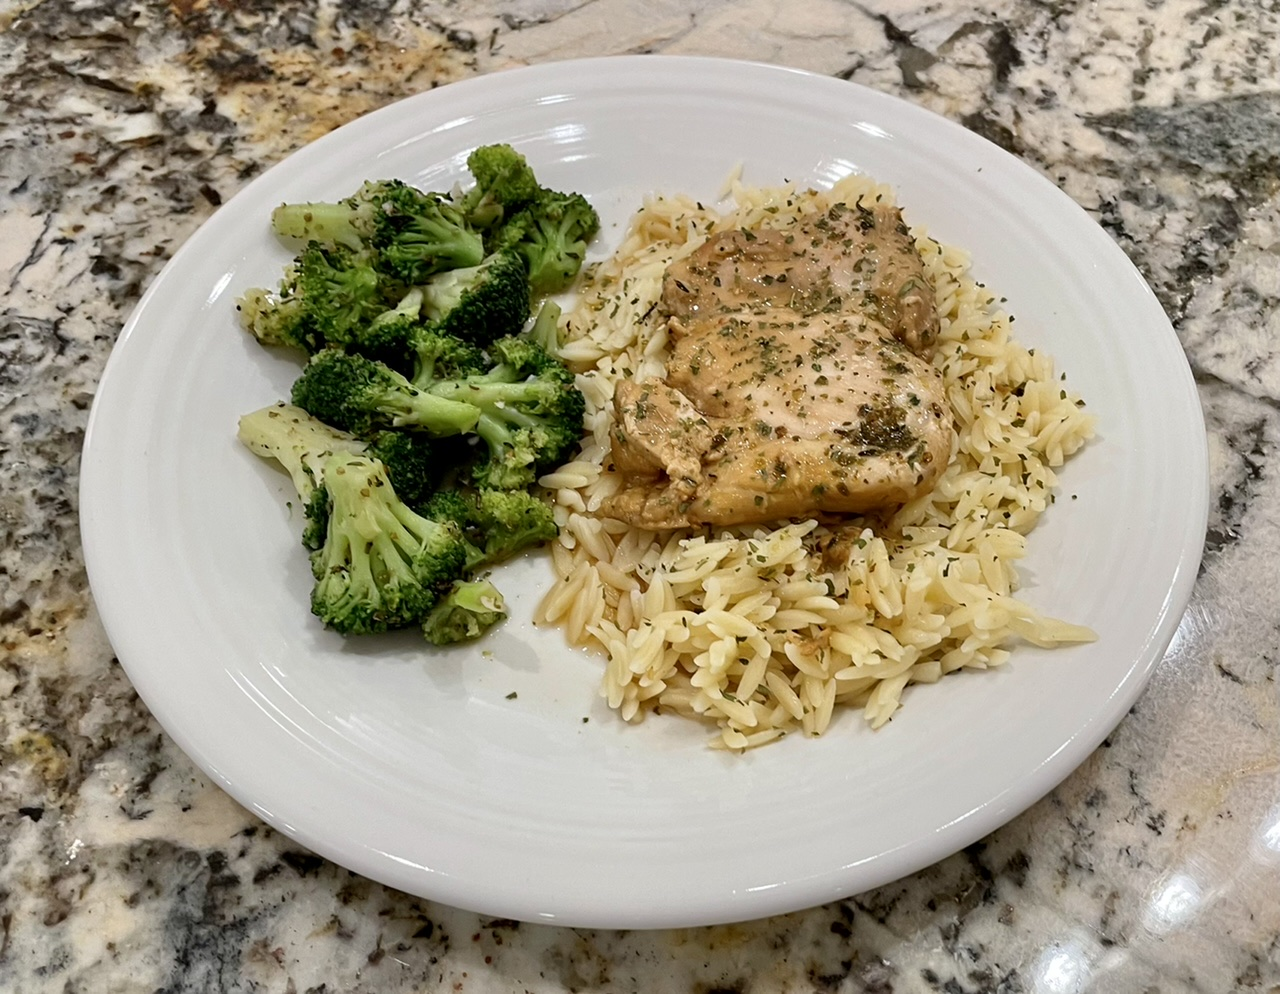 Dill chicken thighs over orzo with garlic roasted broccoli.